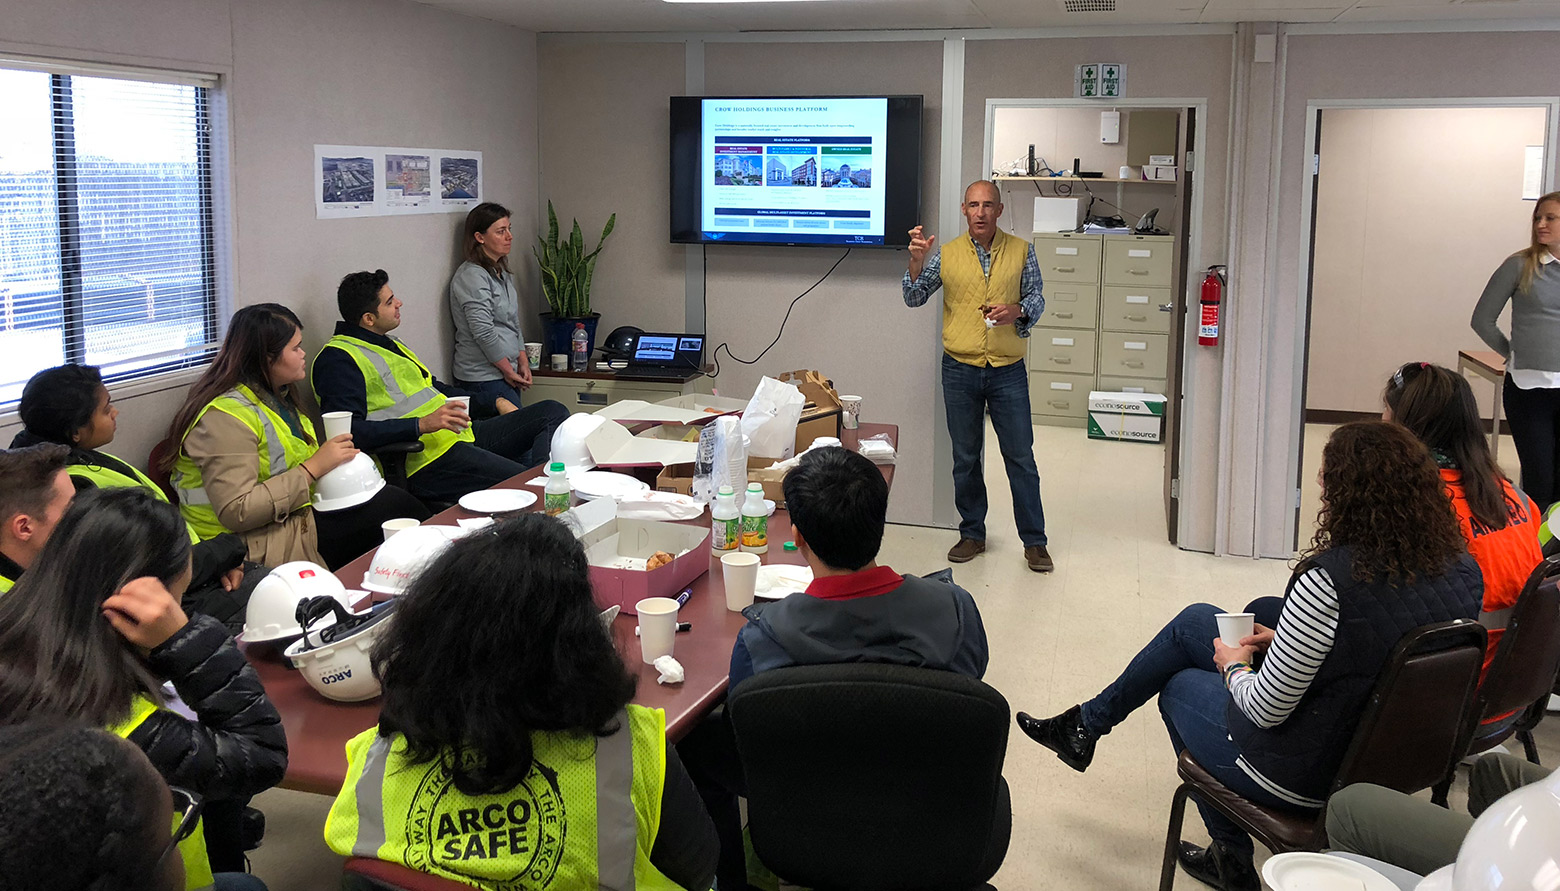 Man giving presentation to small group in construction office